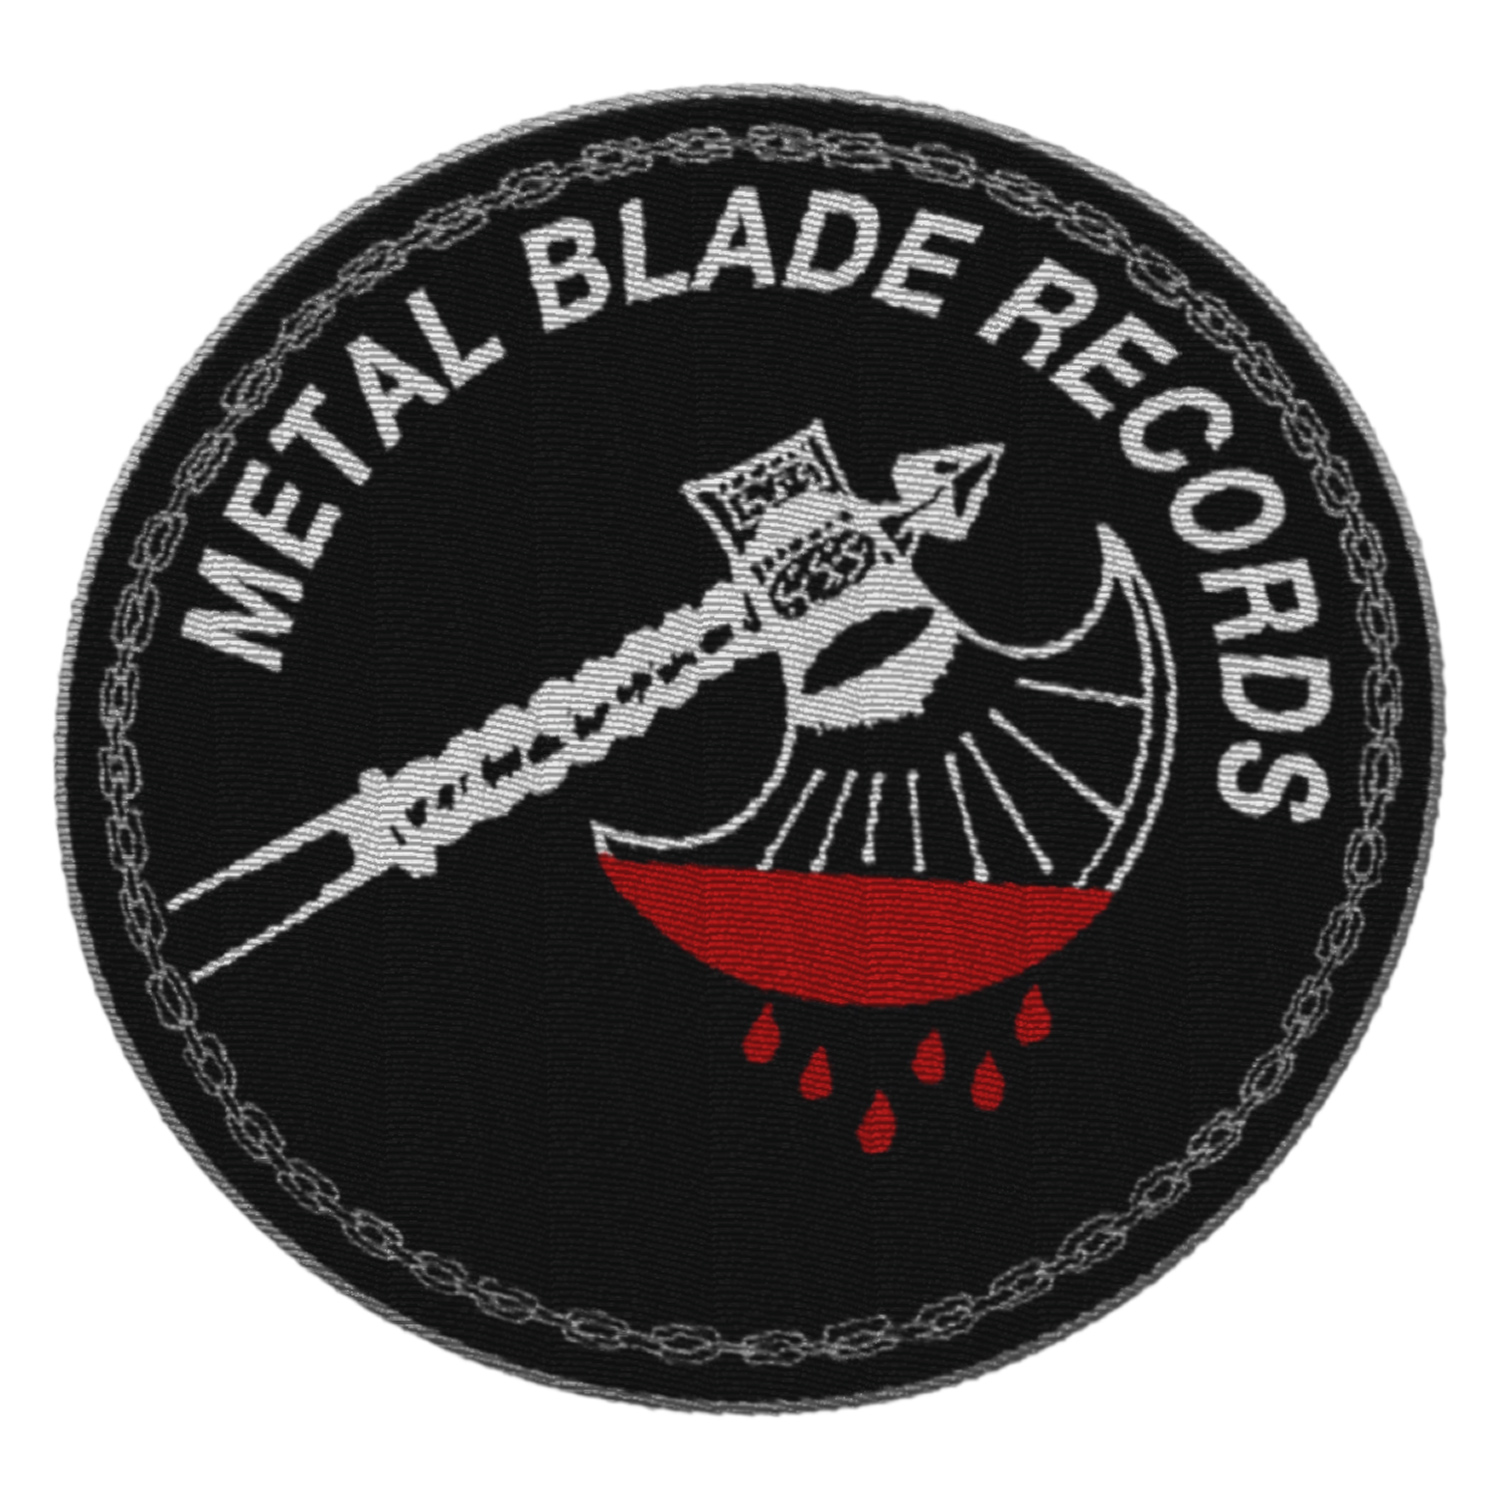 Metal Blade Records Axe Logo Patch Patch Metal Blade Records